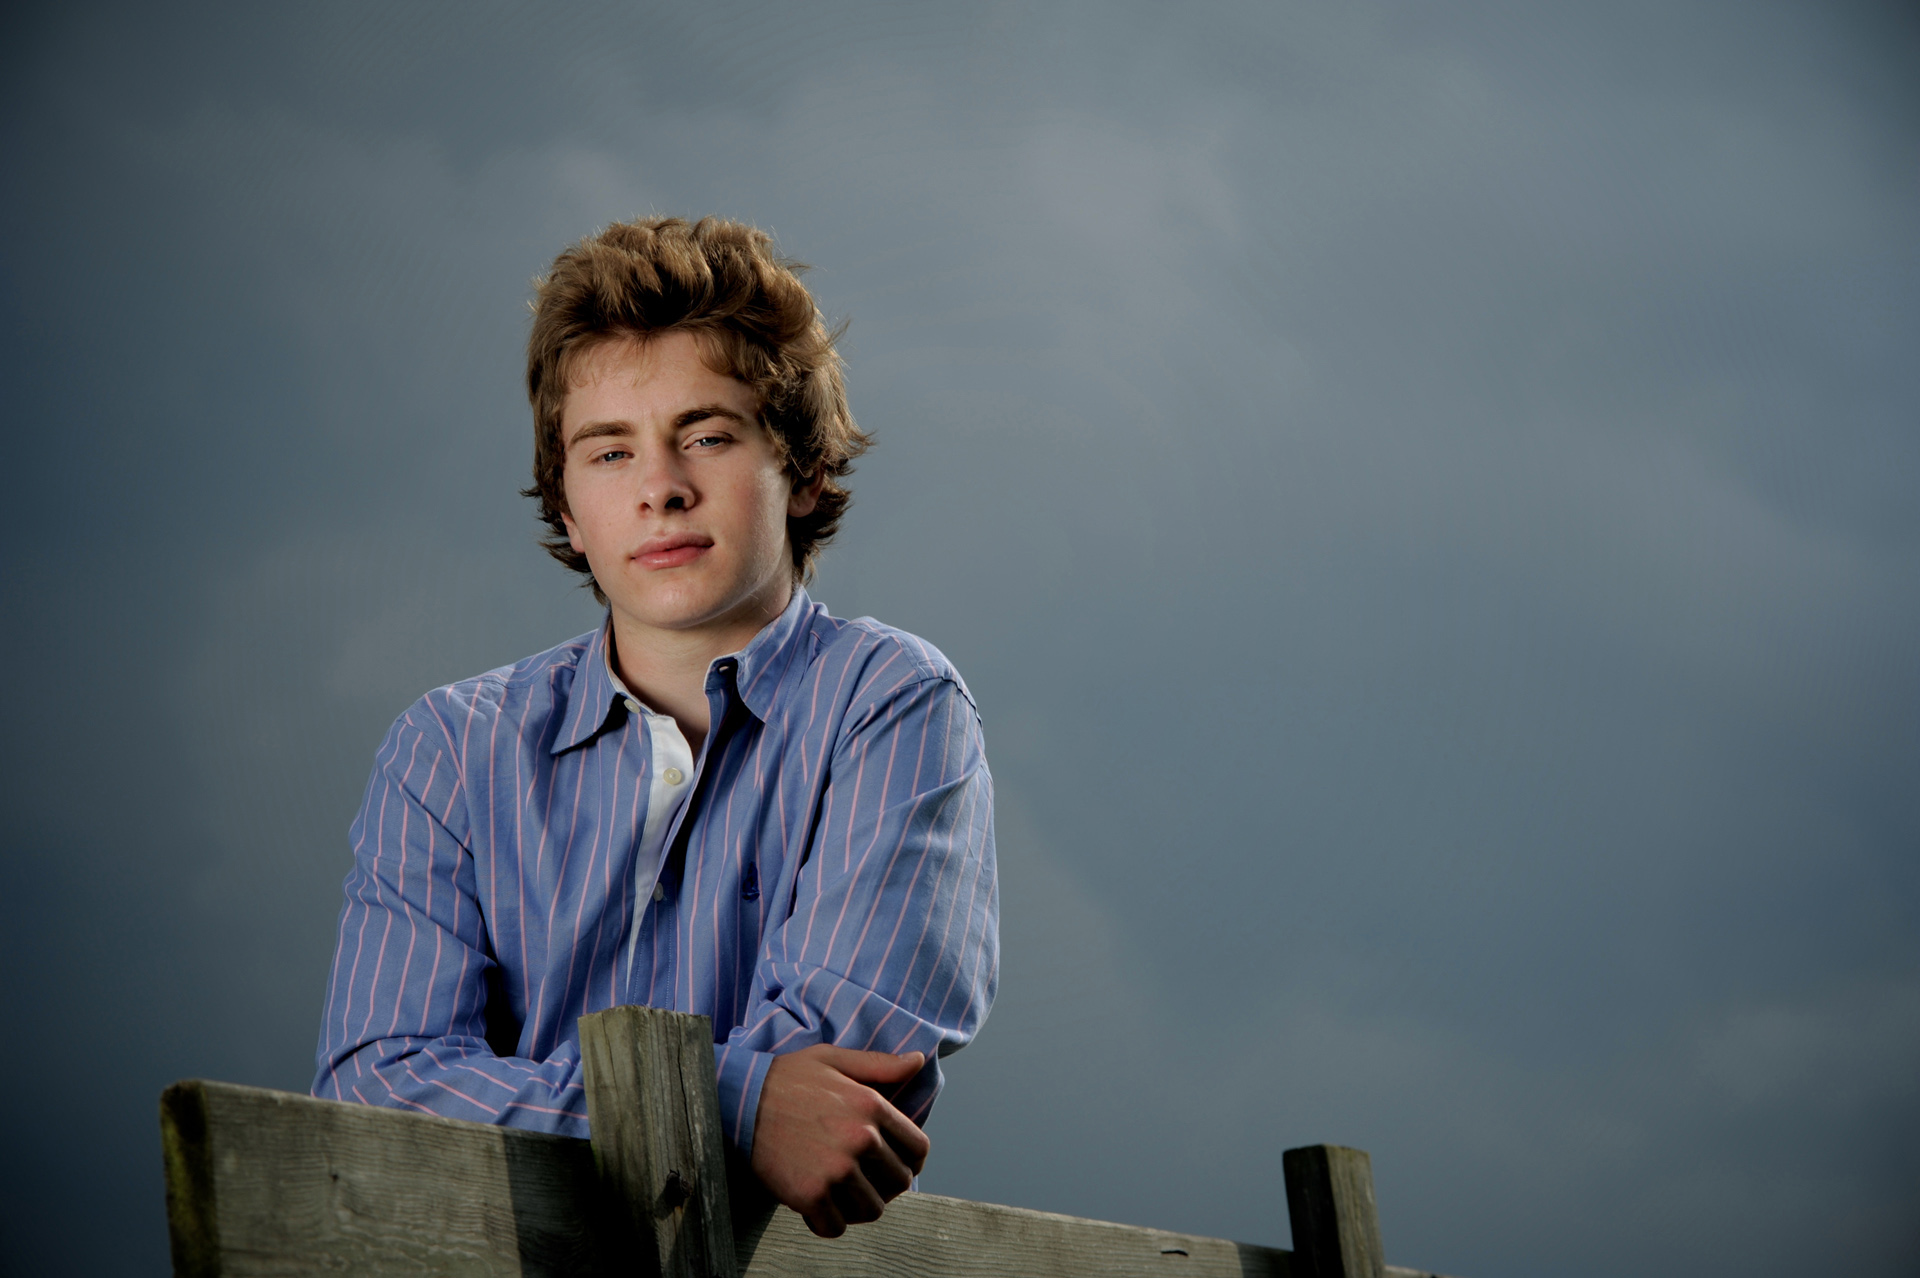 Troy , Michigan senior photographer's photo taken as the high school senior gets his troy-senior-photos taken just before a huge storm.